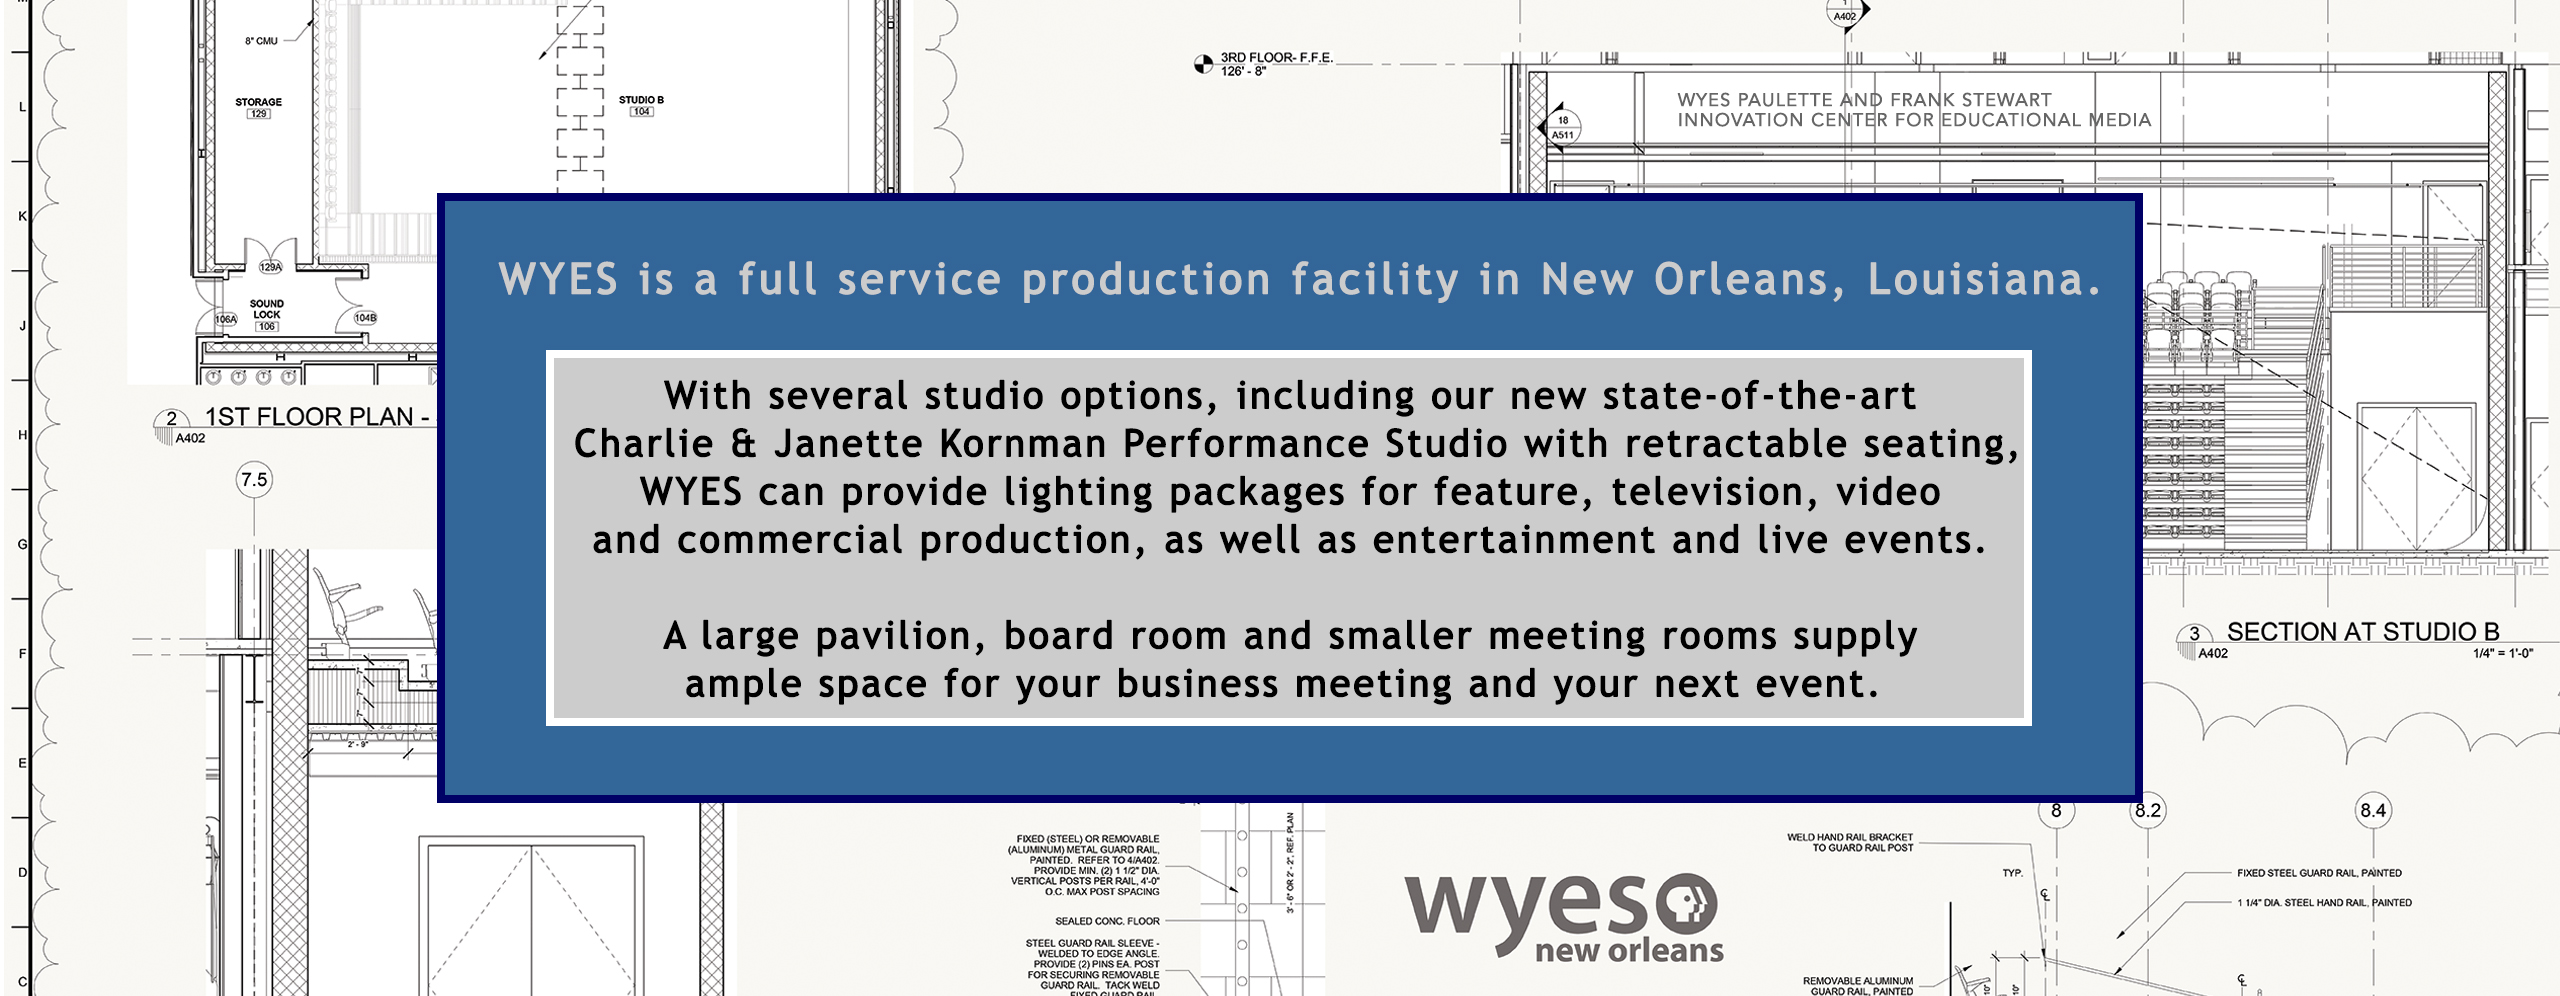 WYES facility rental information